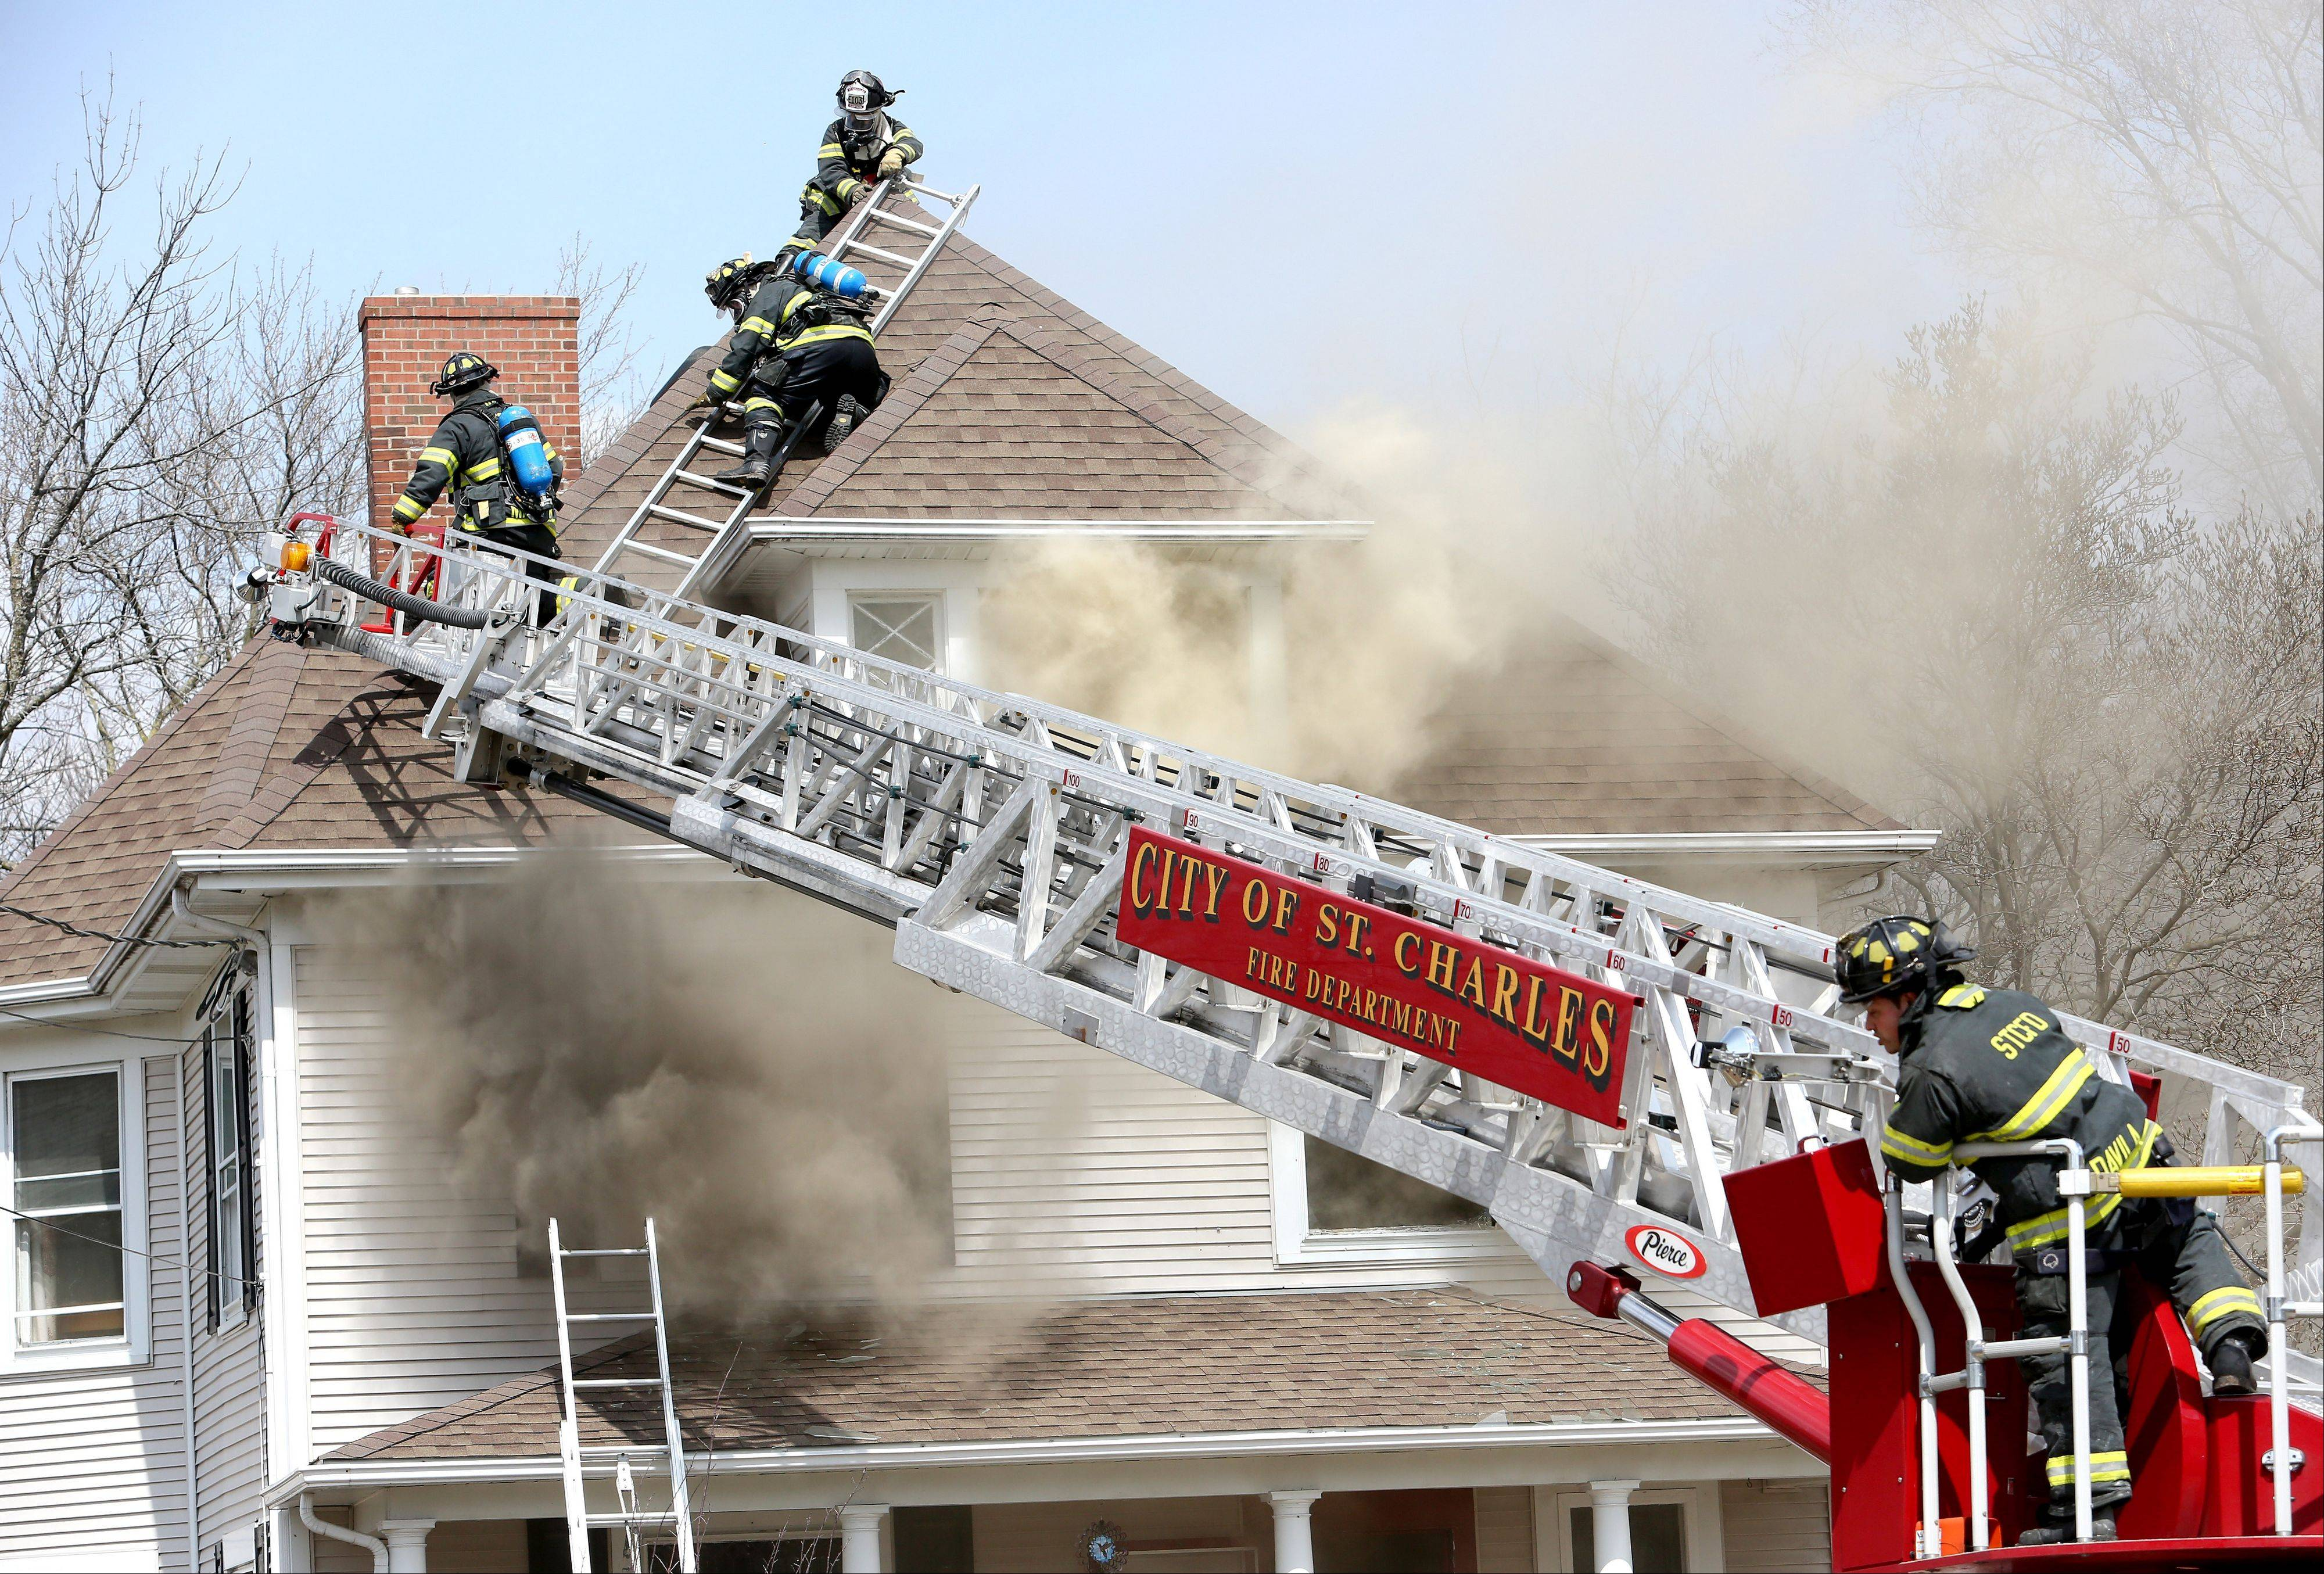 Firefighters battle a house fire in the 600 block of State Avenue in St. Charles on Sunday.